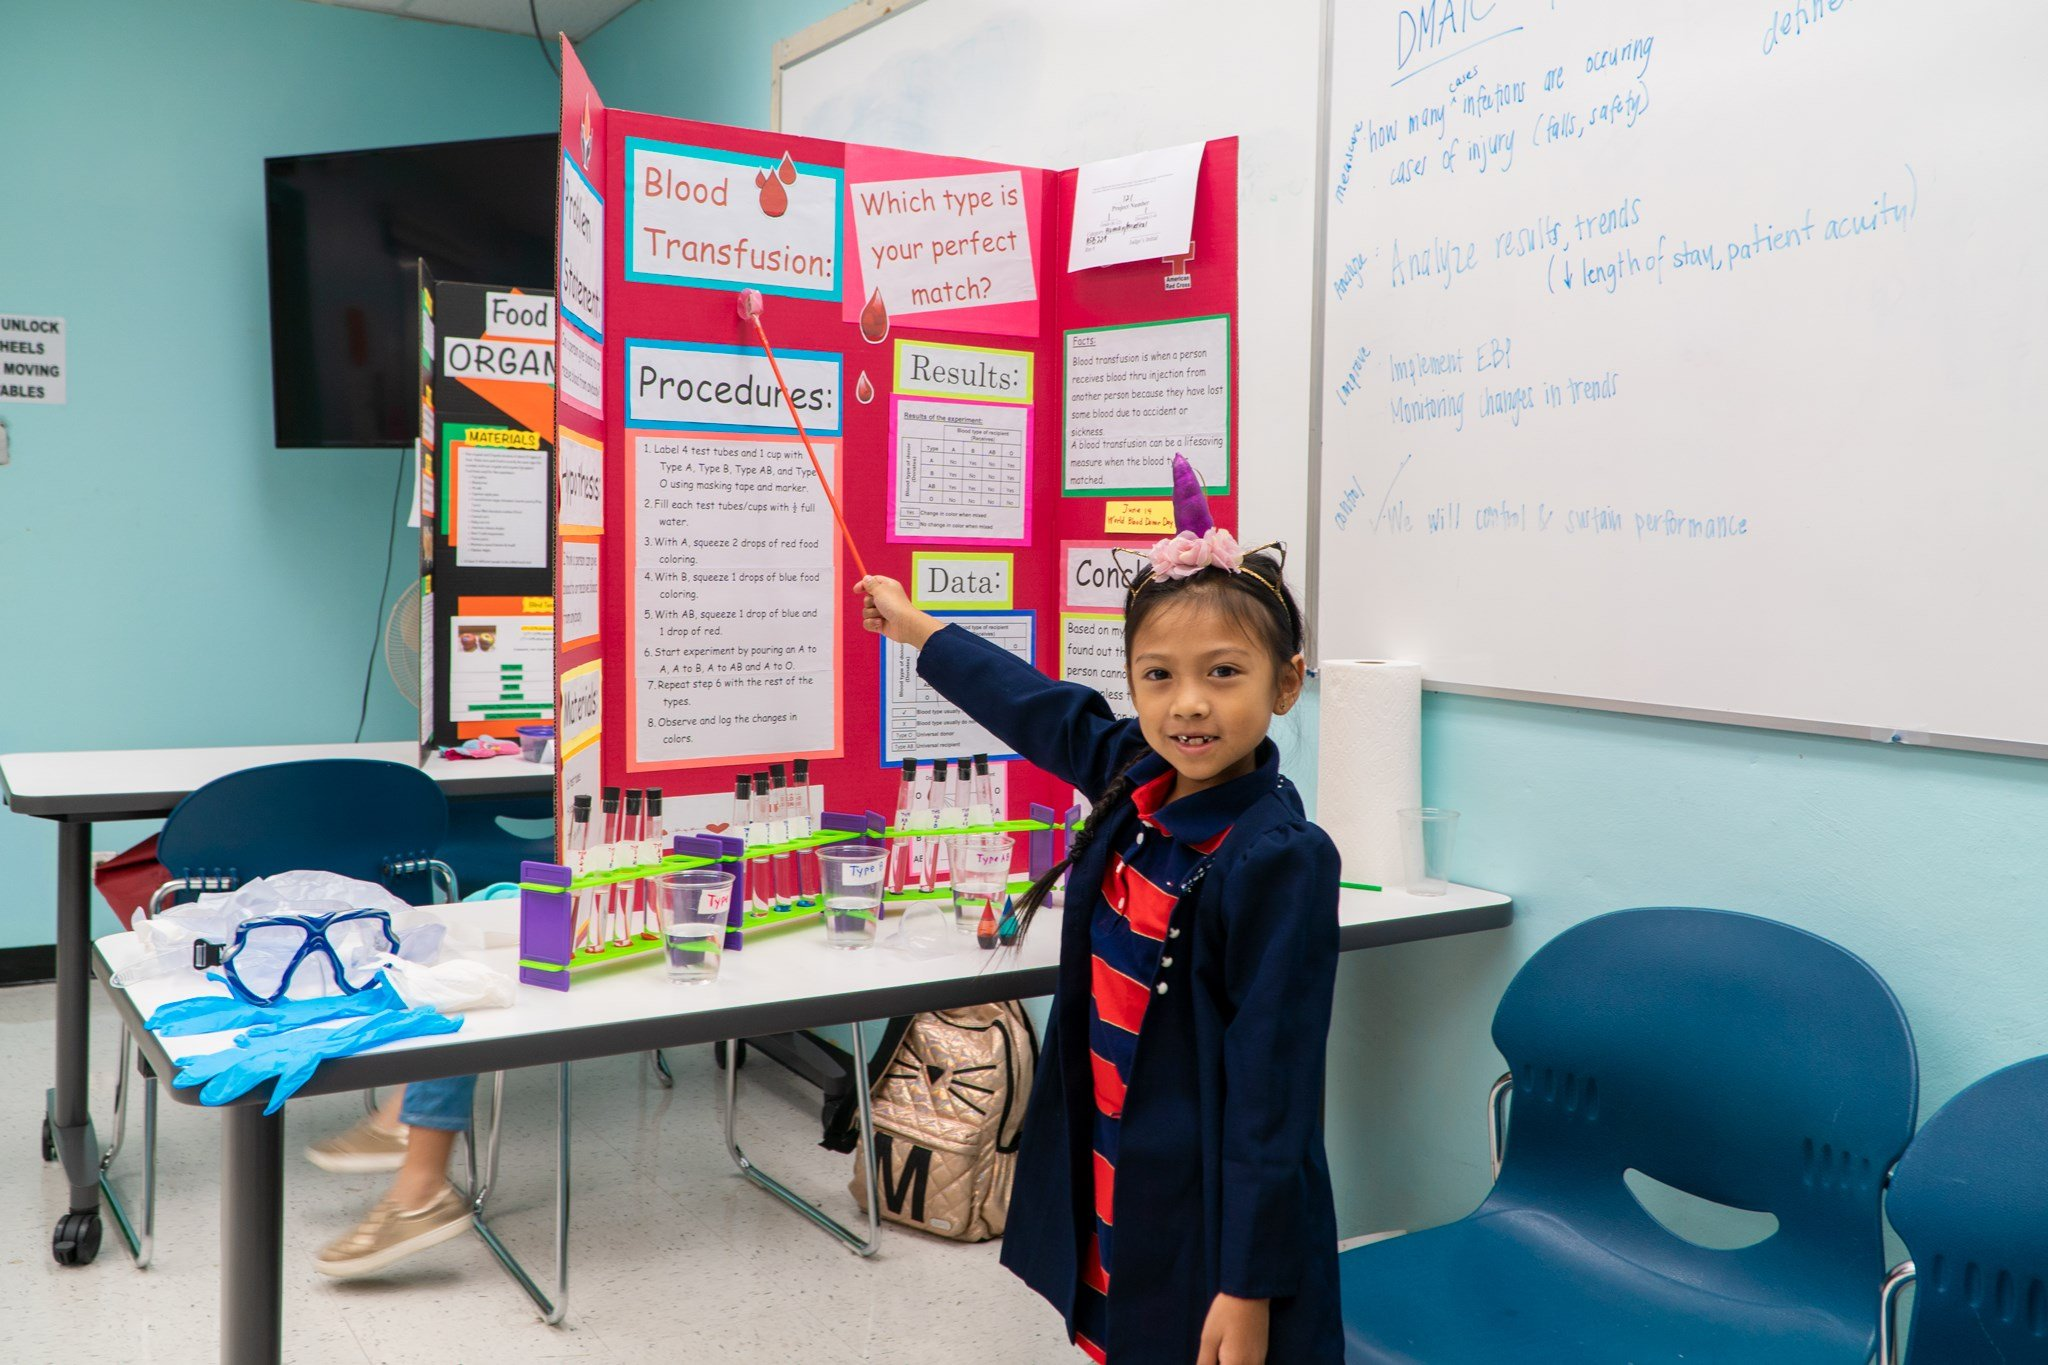 """Xylah Limtuatco of Machananao Elementary School, with her project: """"Blood Transfusion: Which Type is Your Perfect Match?"""""""